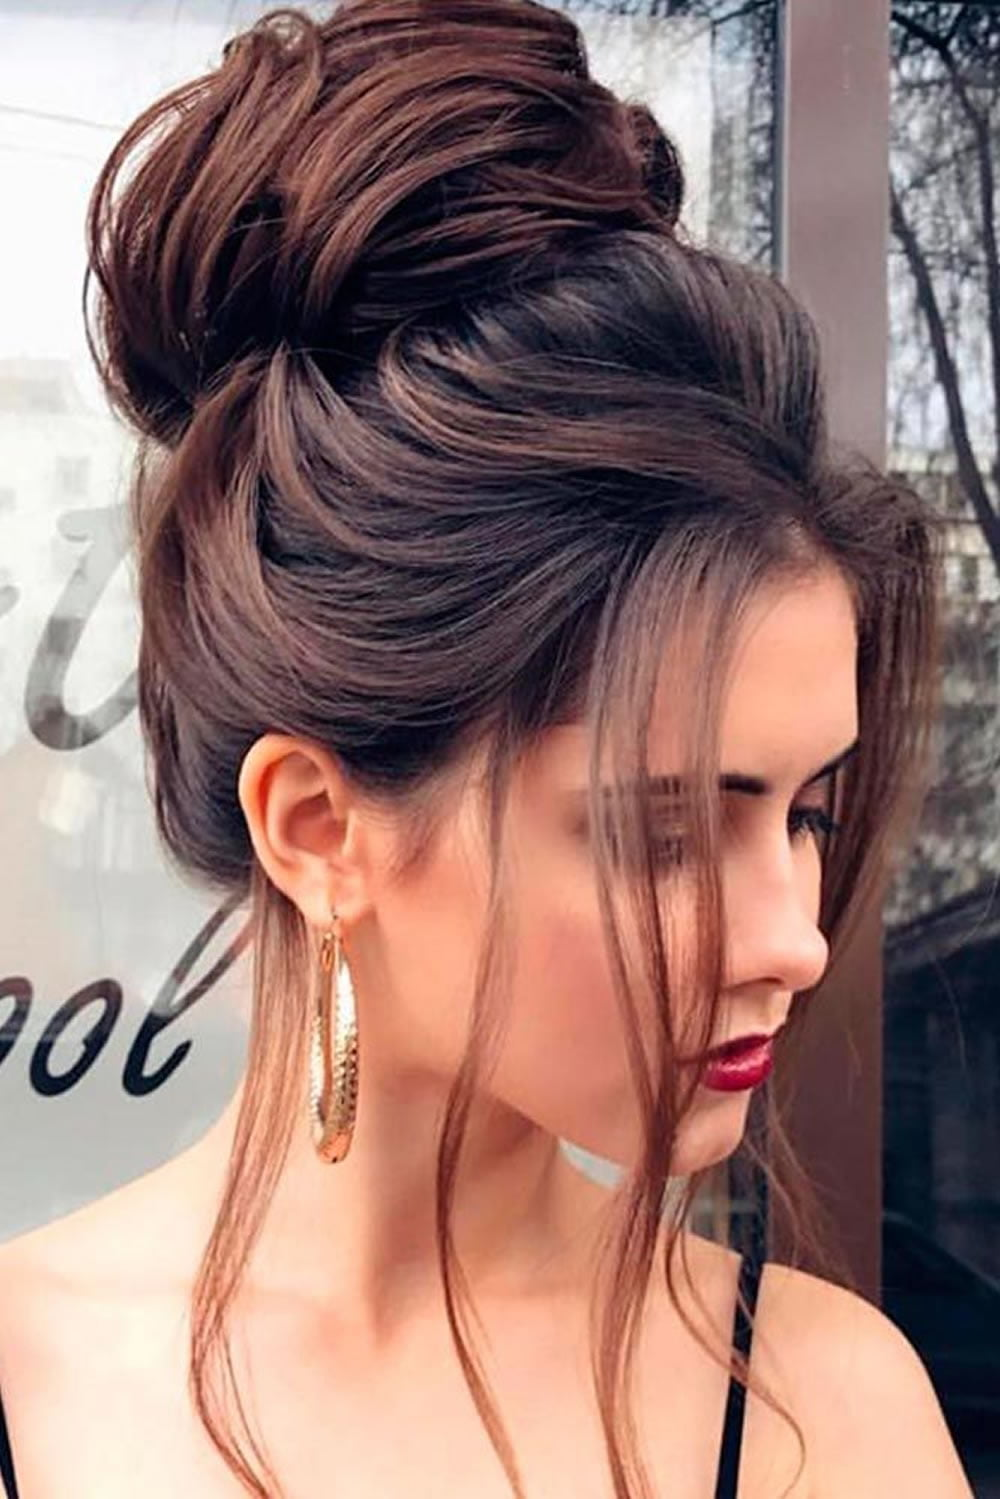 Christmas Party Hairstyles & Haircuts for 2018 - Trendy Party Hair Ideas